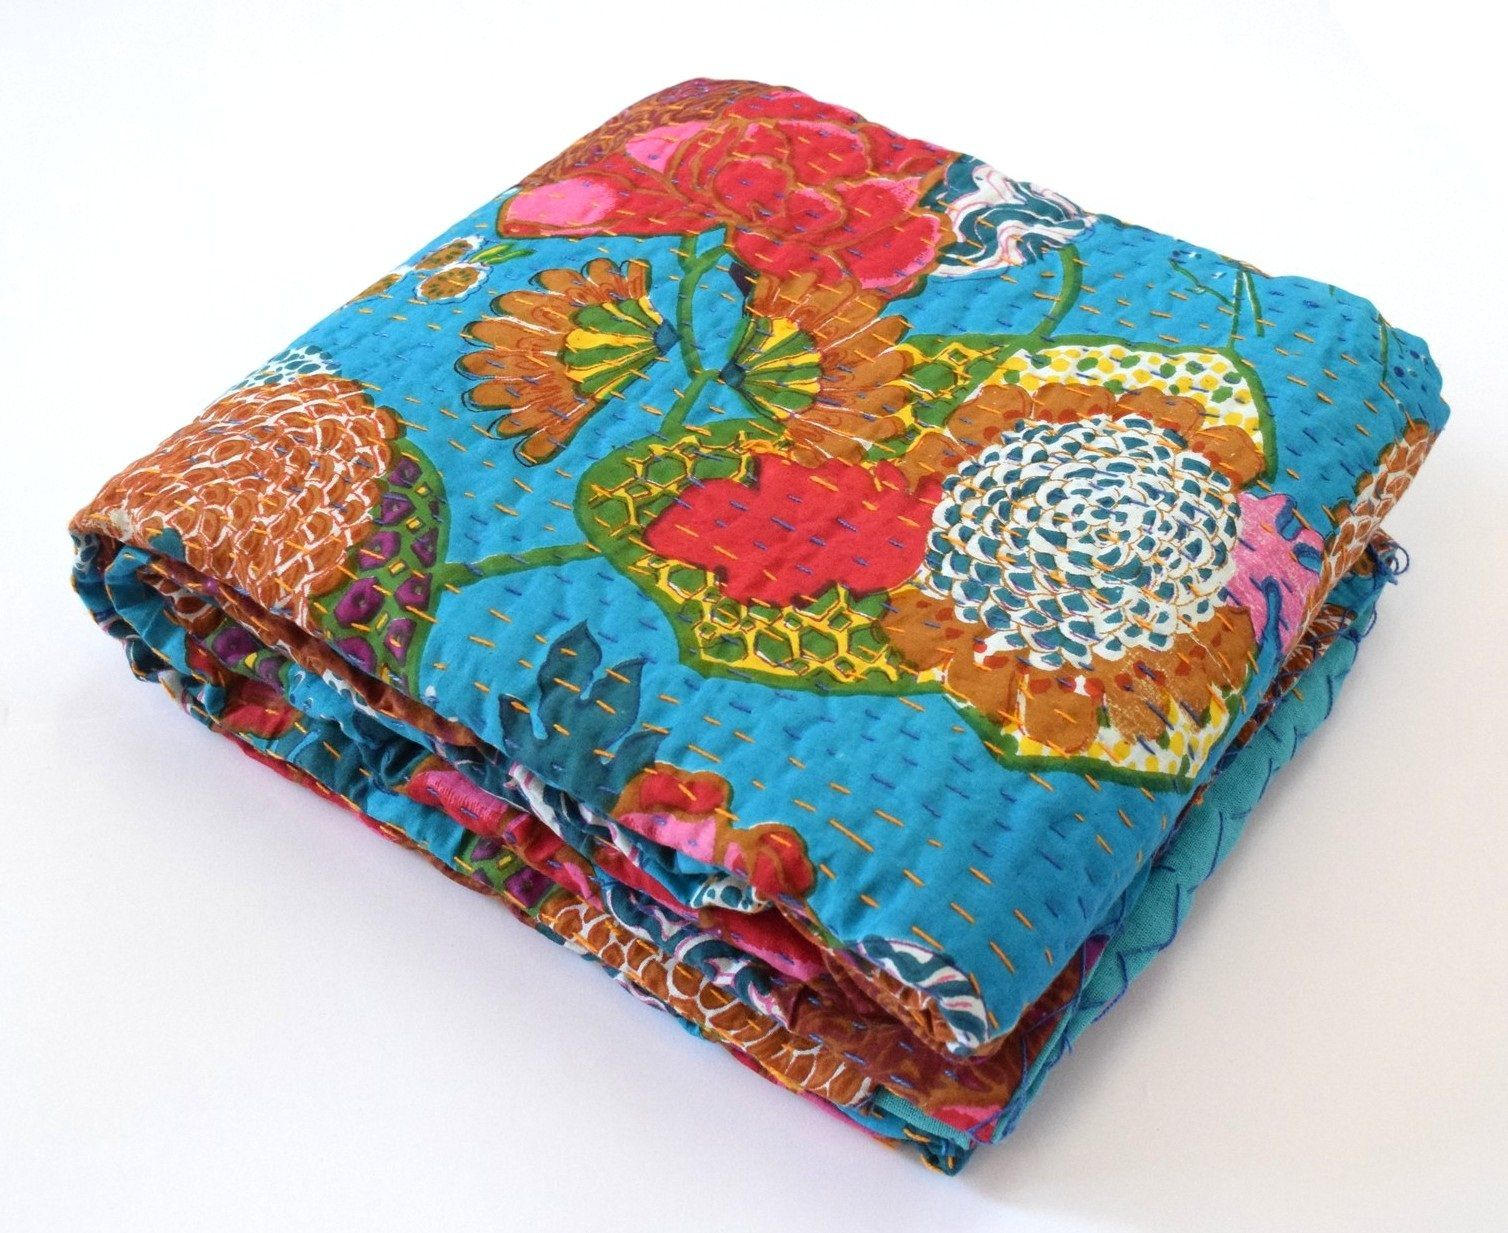 Kantha Tropicana Floral Bedspread Cotton Bedding Blanket Throw Handmade Quilts